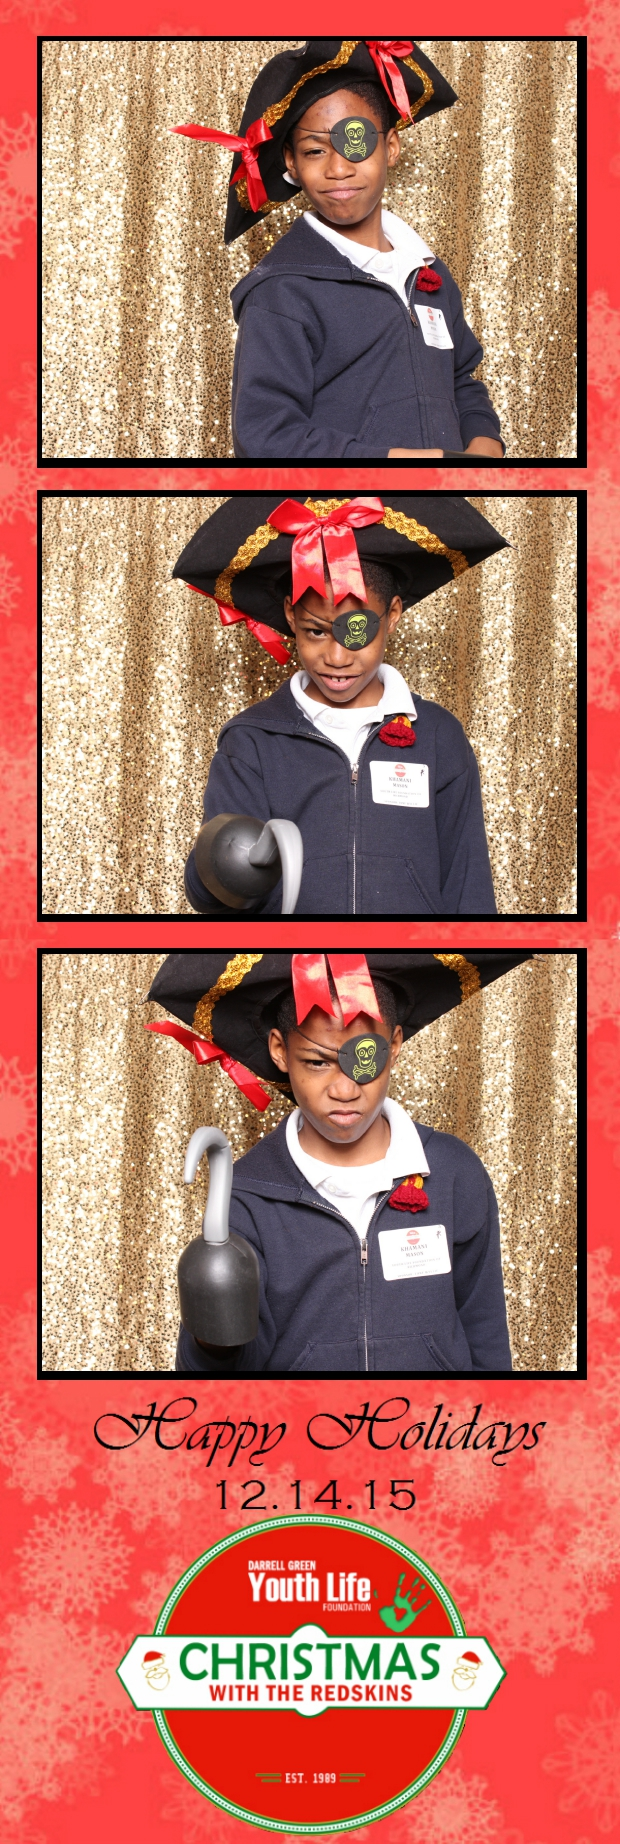 Guest House Events Photo Booth DGYLF Strips (8).jpg